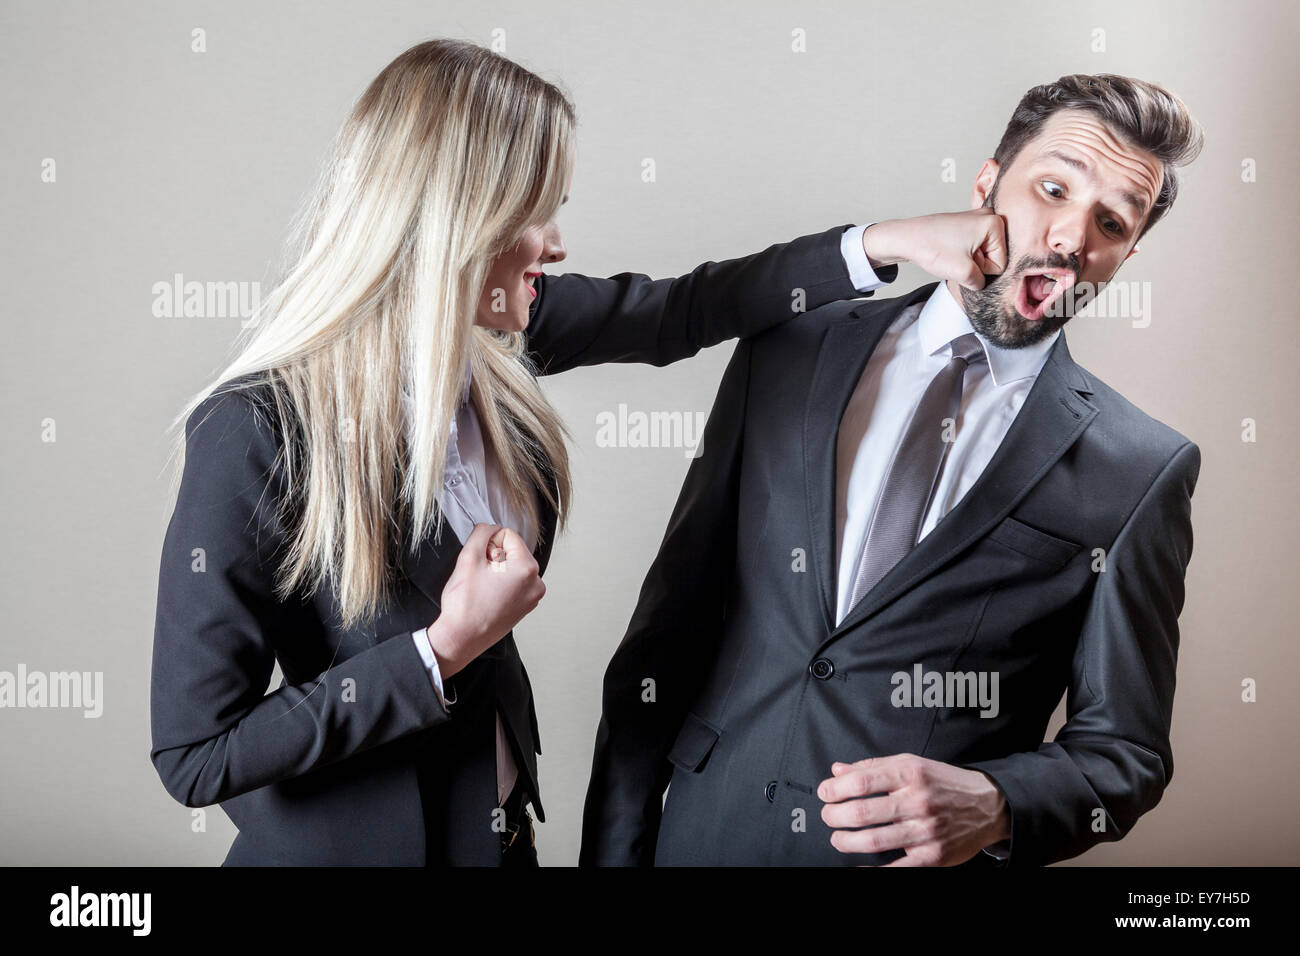 Businesswoman hitting businessman with fist - Stock Image